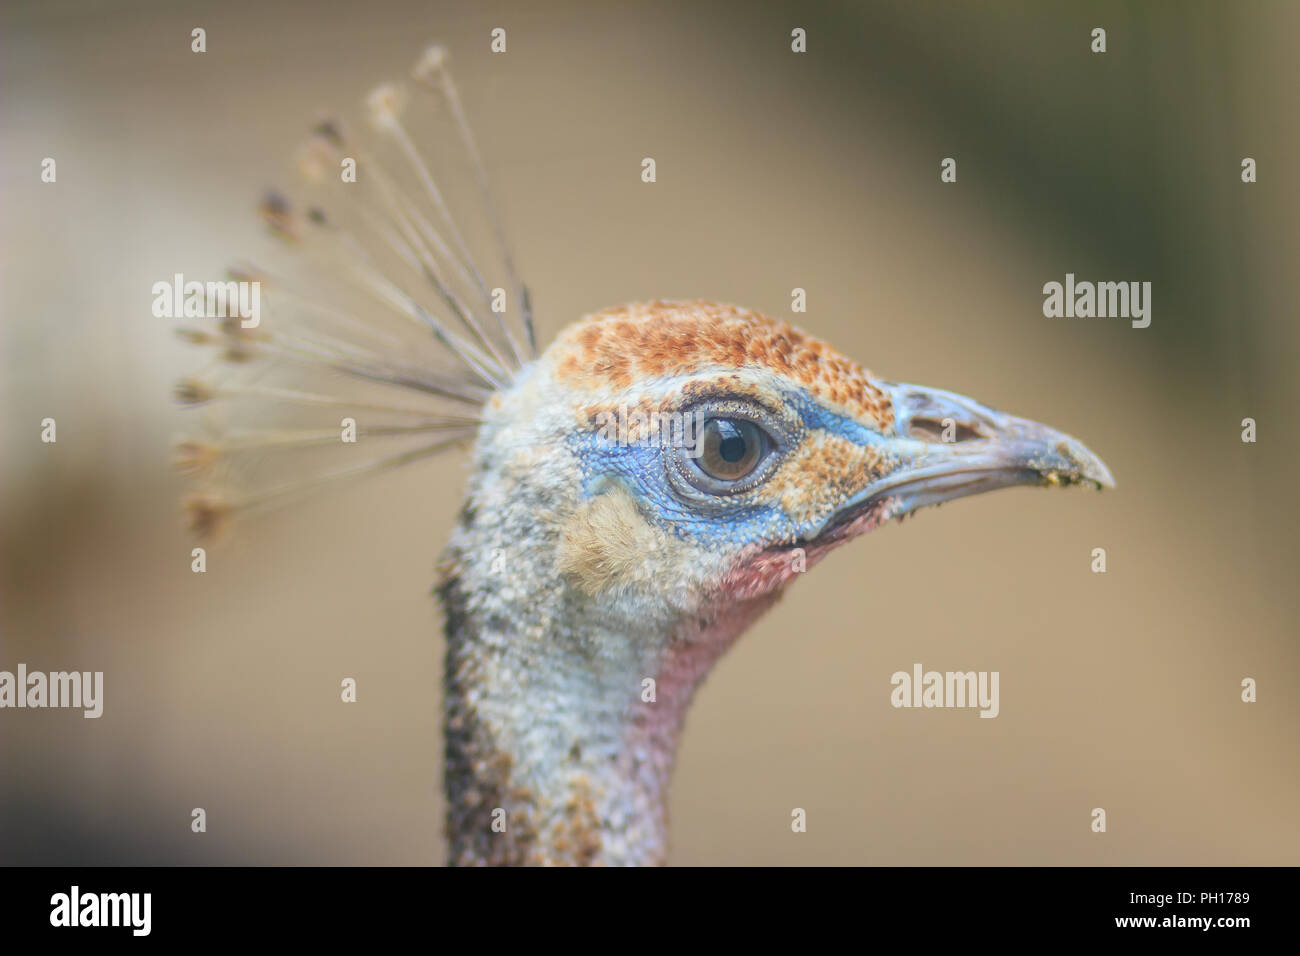 Young pied peafowl. Albino juvenile peacock. - Stock Image